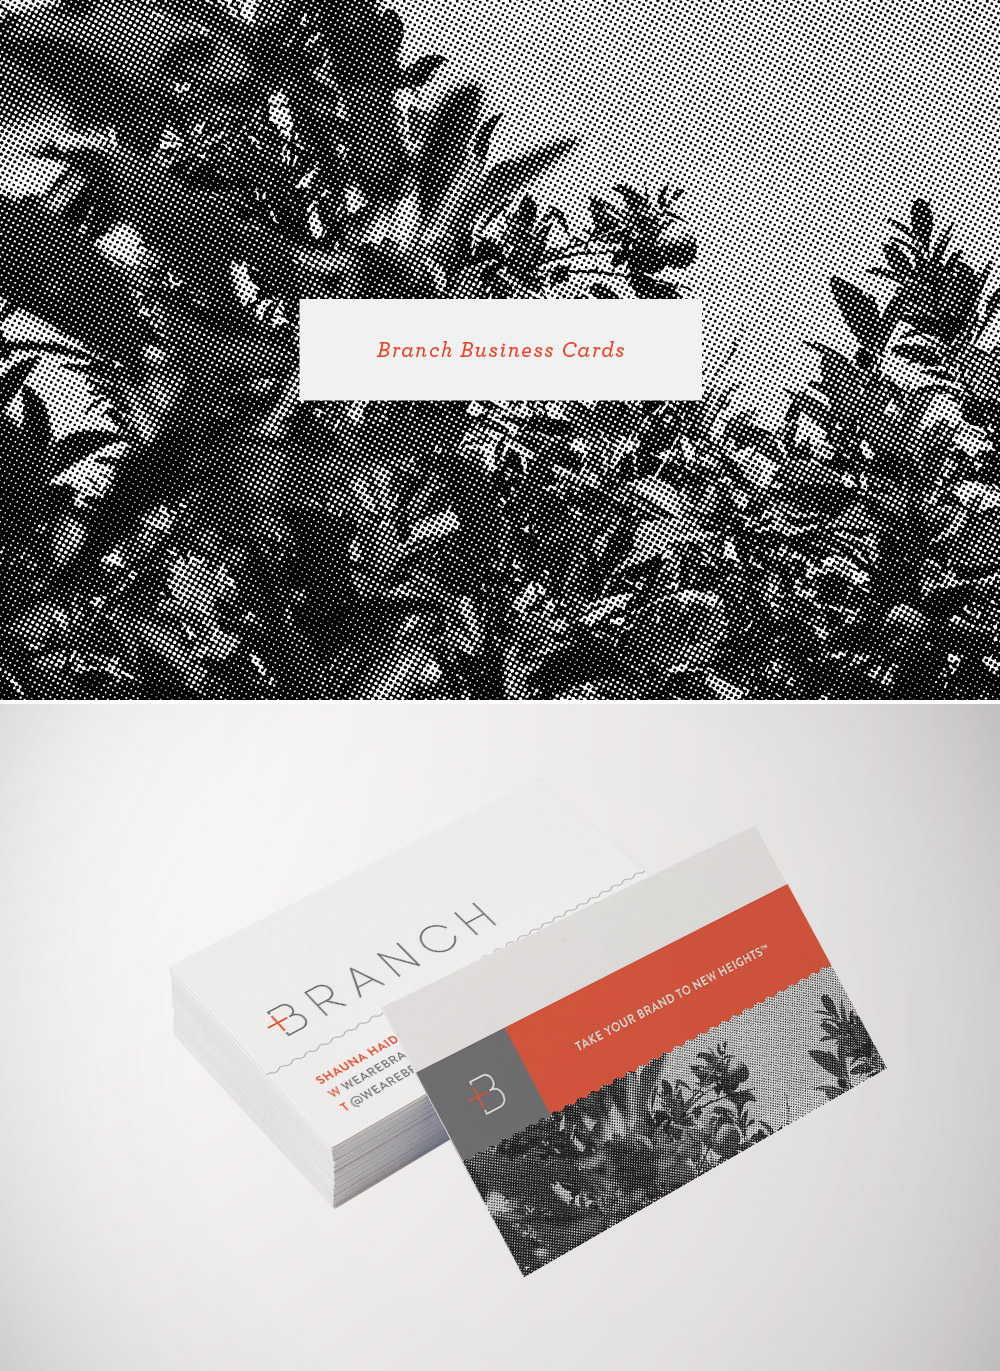 Branch Business Cards